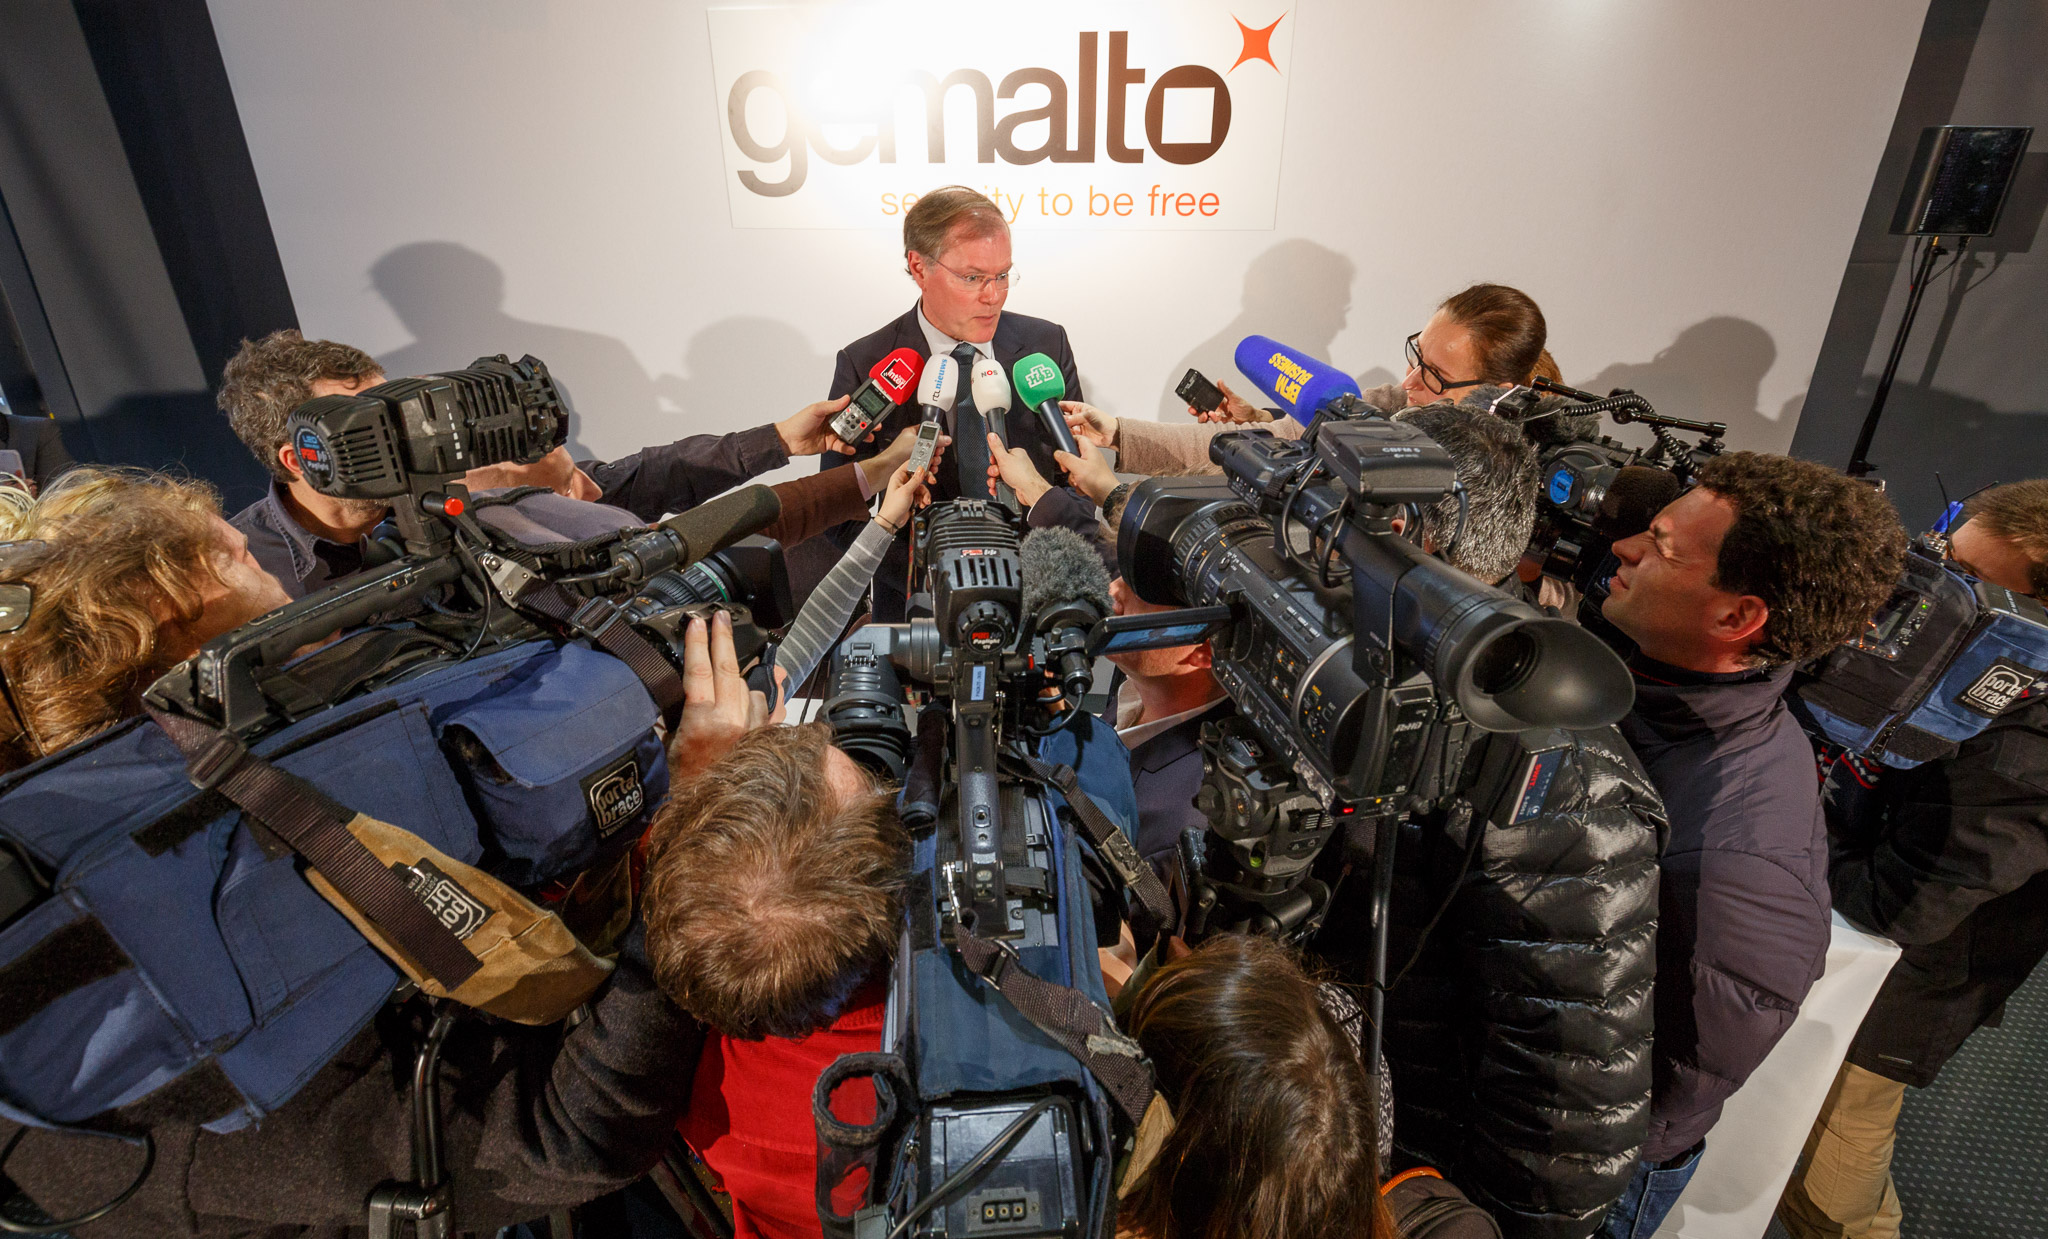 Gemalto Chief Executive Olivier Piou answers questions about SIM card key theft attempts at a Paris news conference.